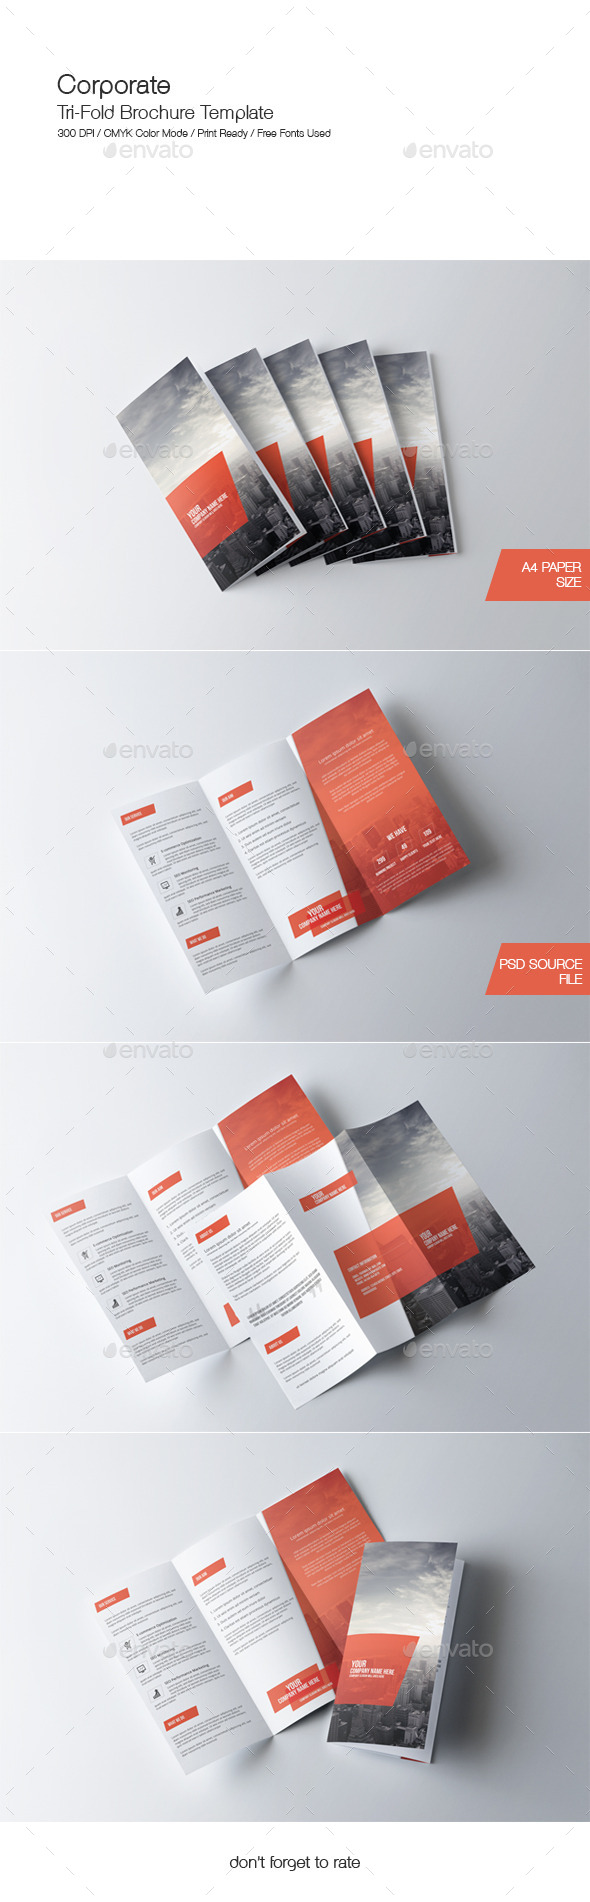 corporate trifold brochure template photoshop psd a4 size